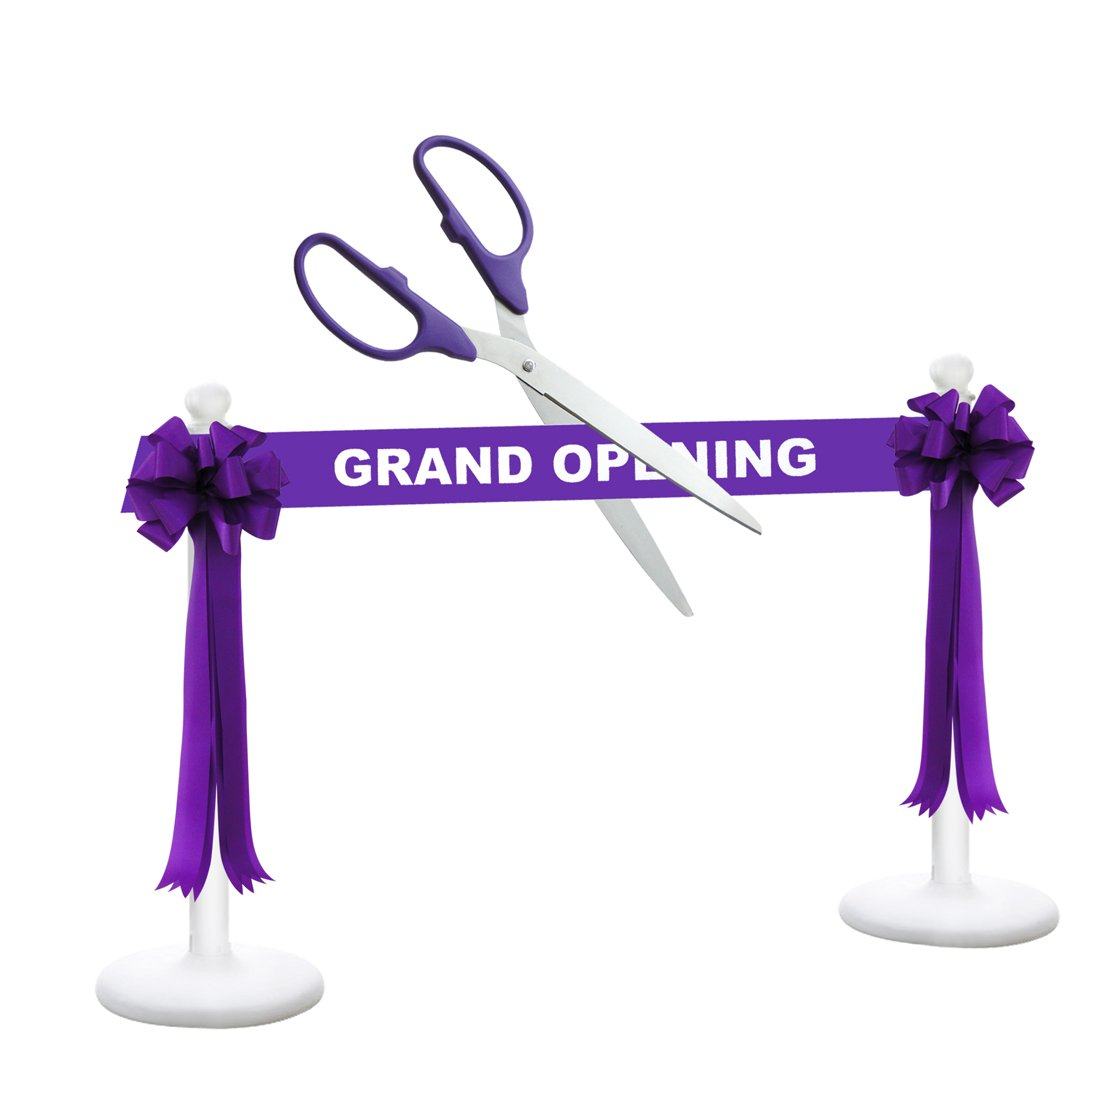 Deluxe Grand Opening Kit - 36'' Purple/Silver Ceremonial Ribbon Cutting Scissors with 5 Yards of 6'' Purple Grand Opening Ribbon, 2 Purple Bows and 2 White Plastic Stanchions